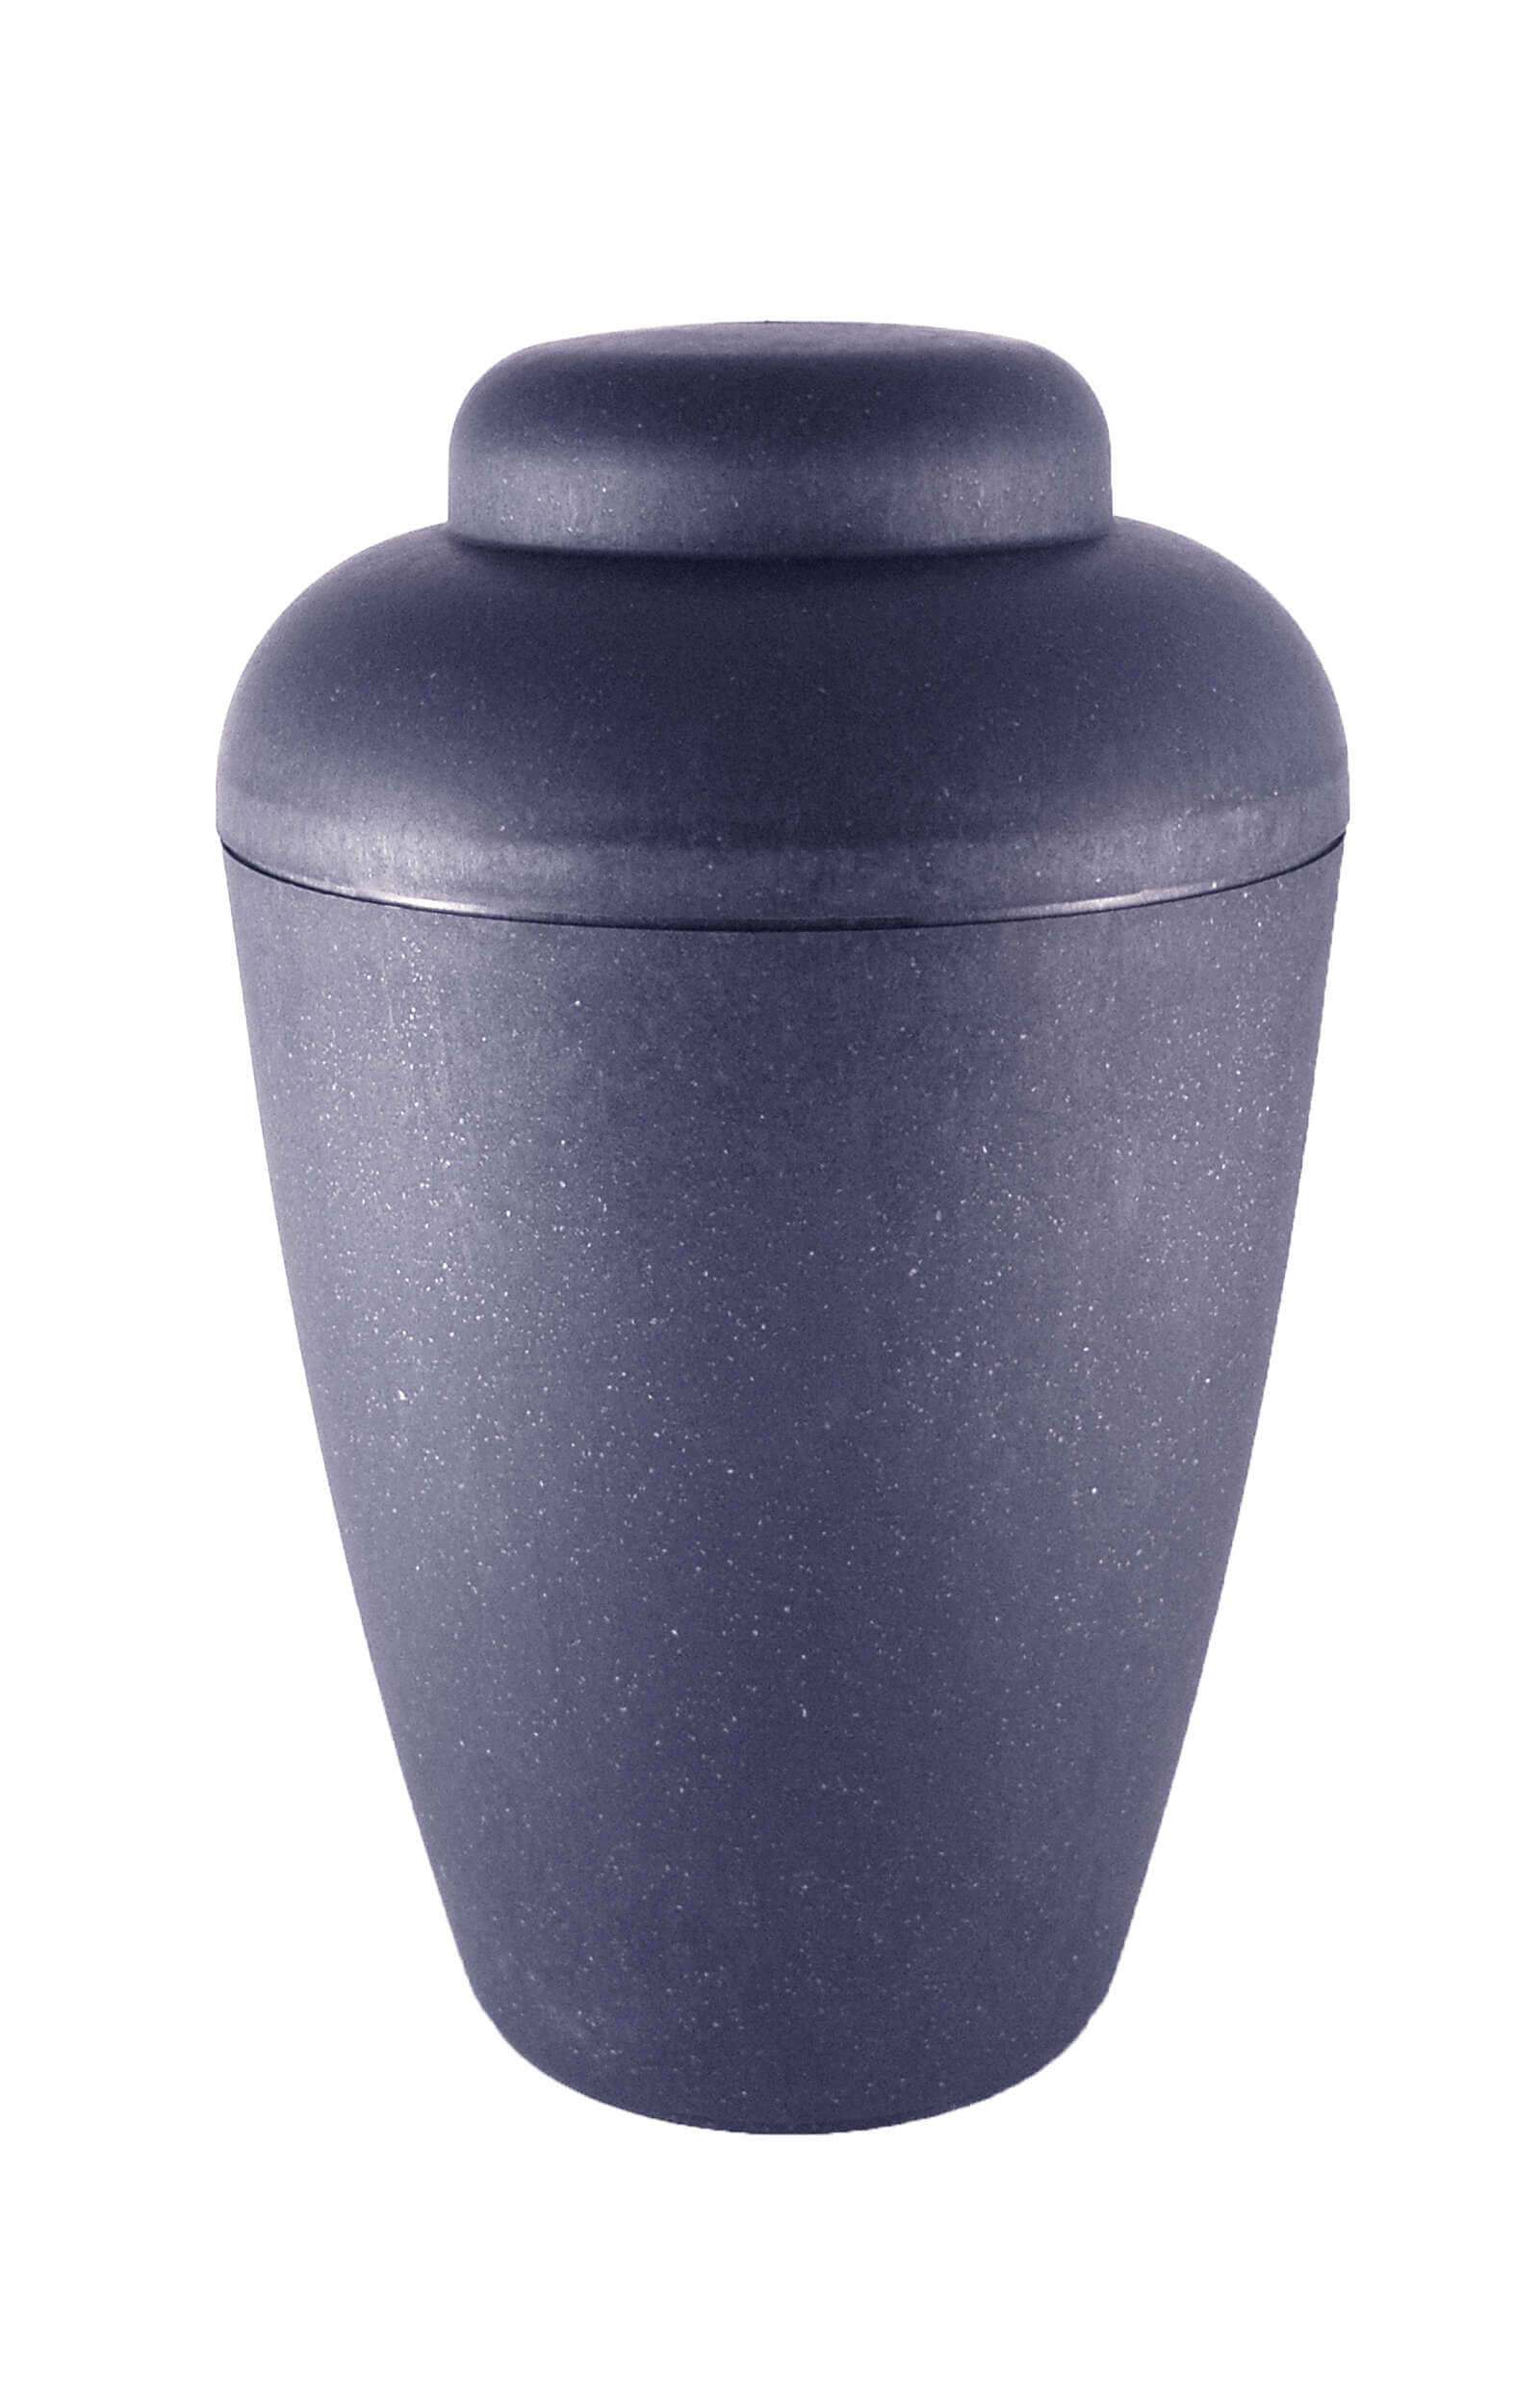 biodigradable urn vale blue elegant shape funeral urns on sale